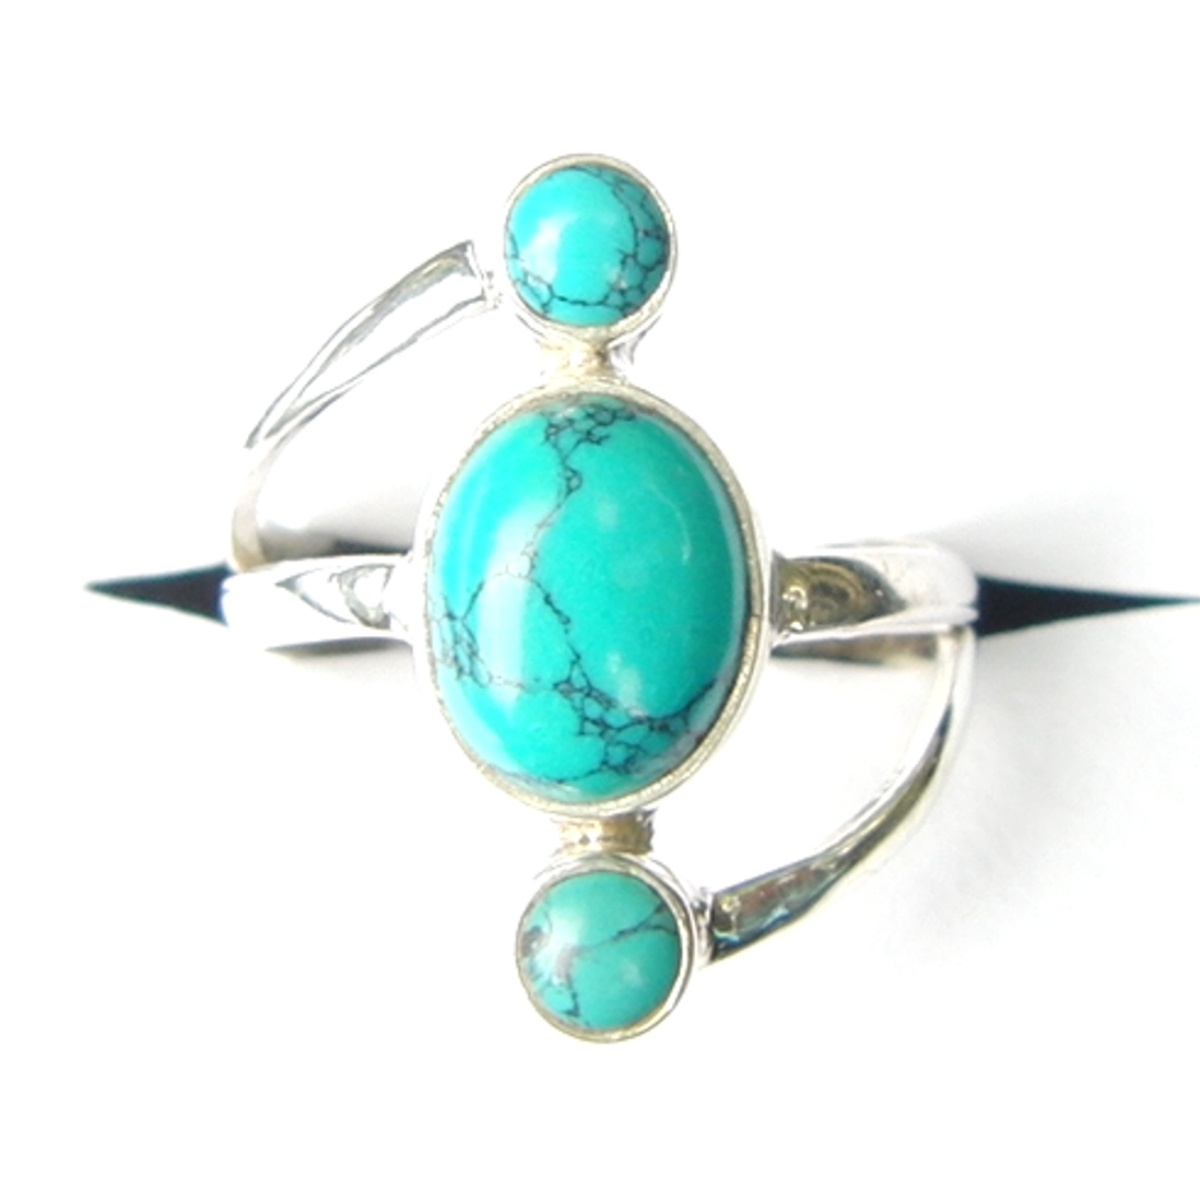 Turquoise Triple Drop Ring.